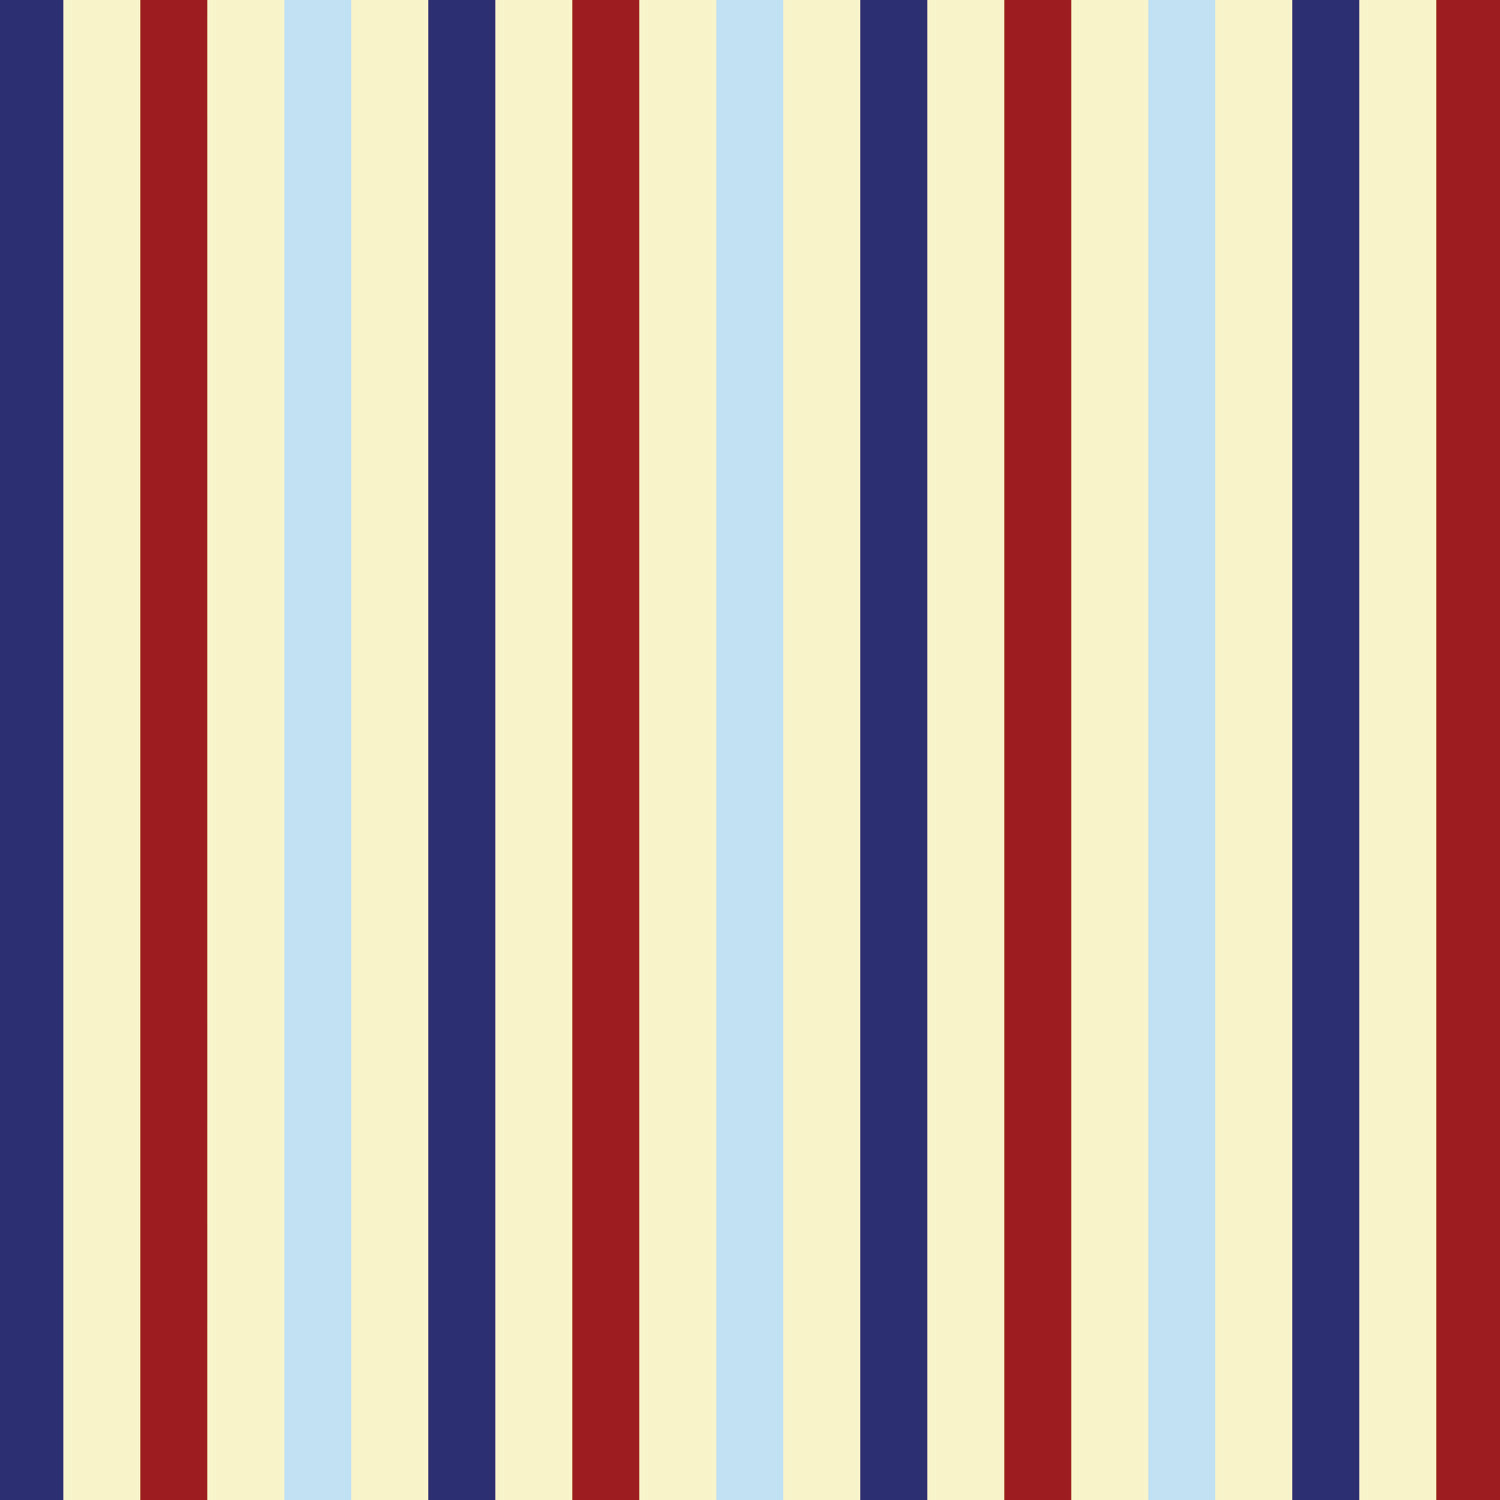 Vertical Striped Navy Blue Red And Beige Curtain Panels